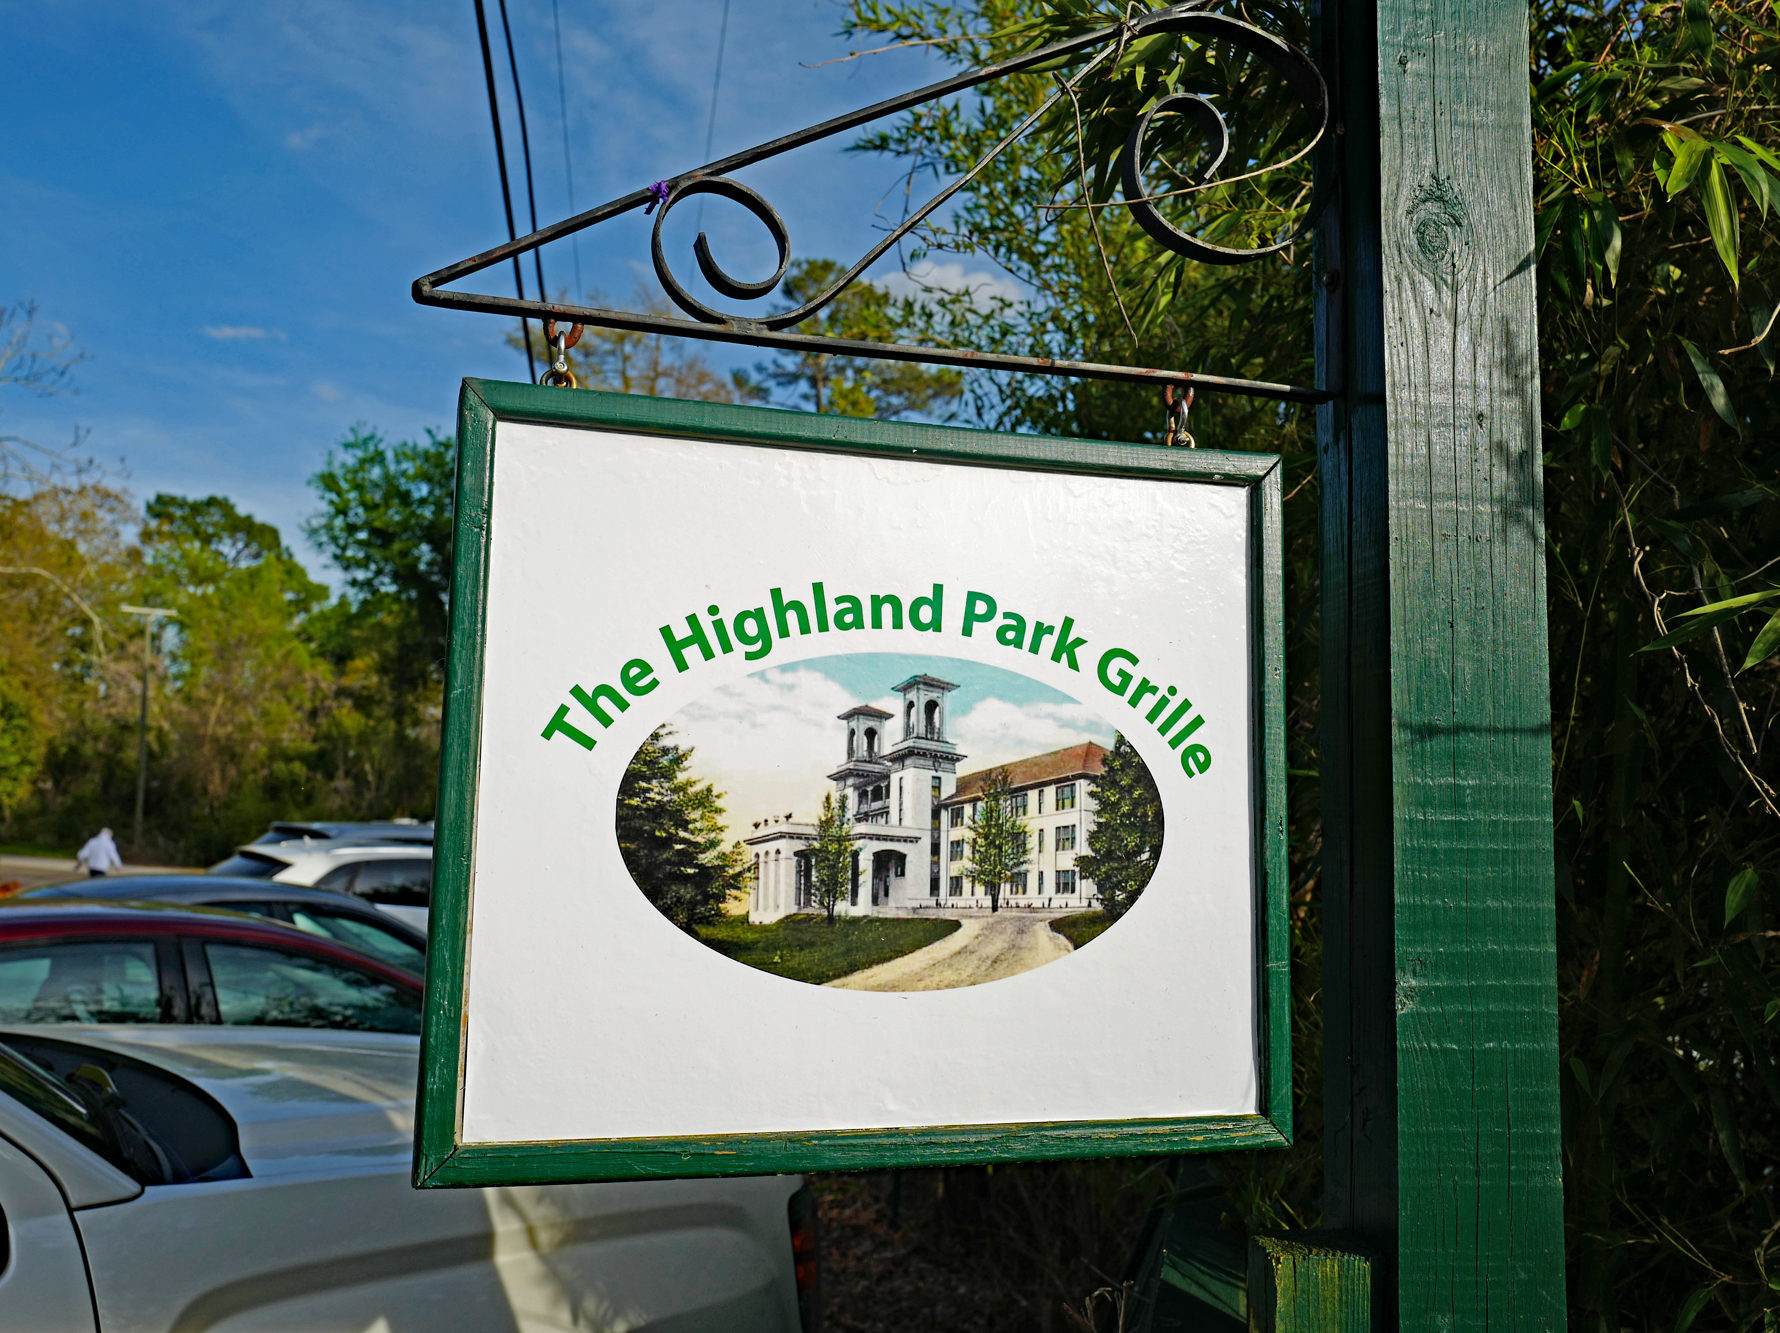 The Highland Park Grille